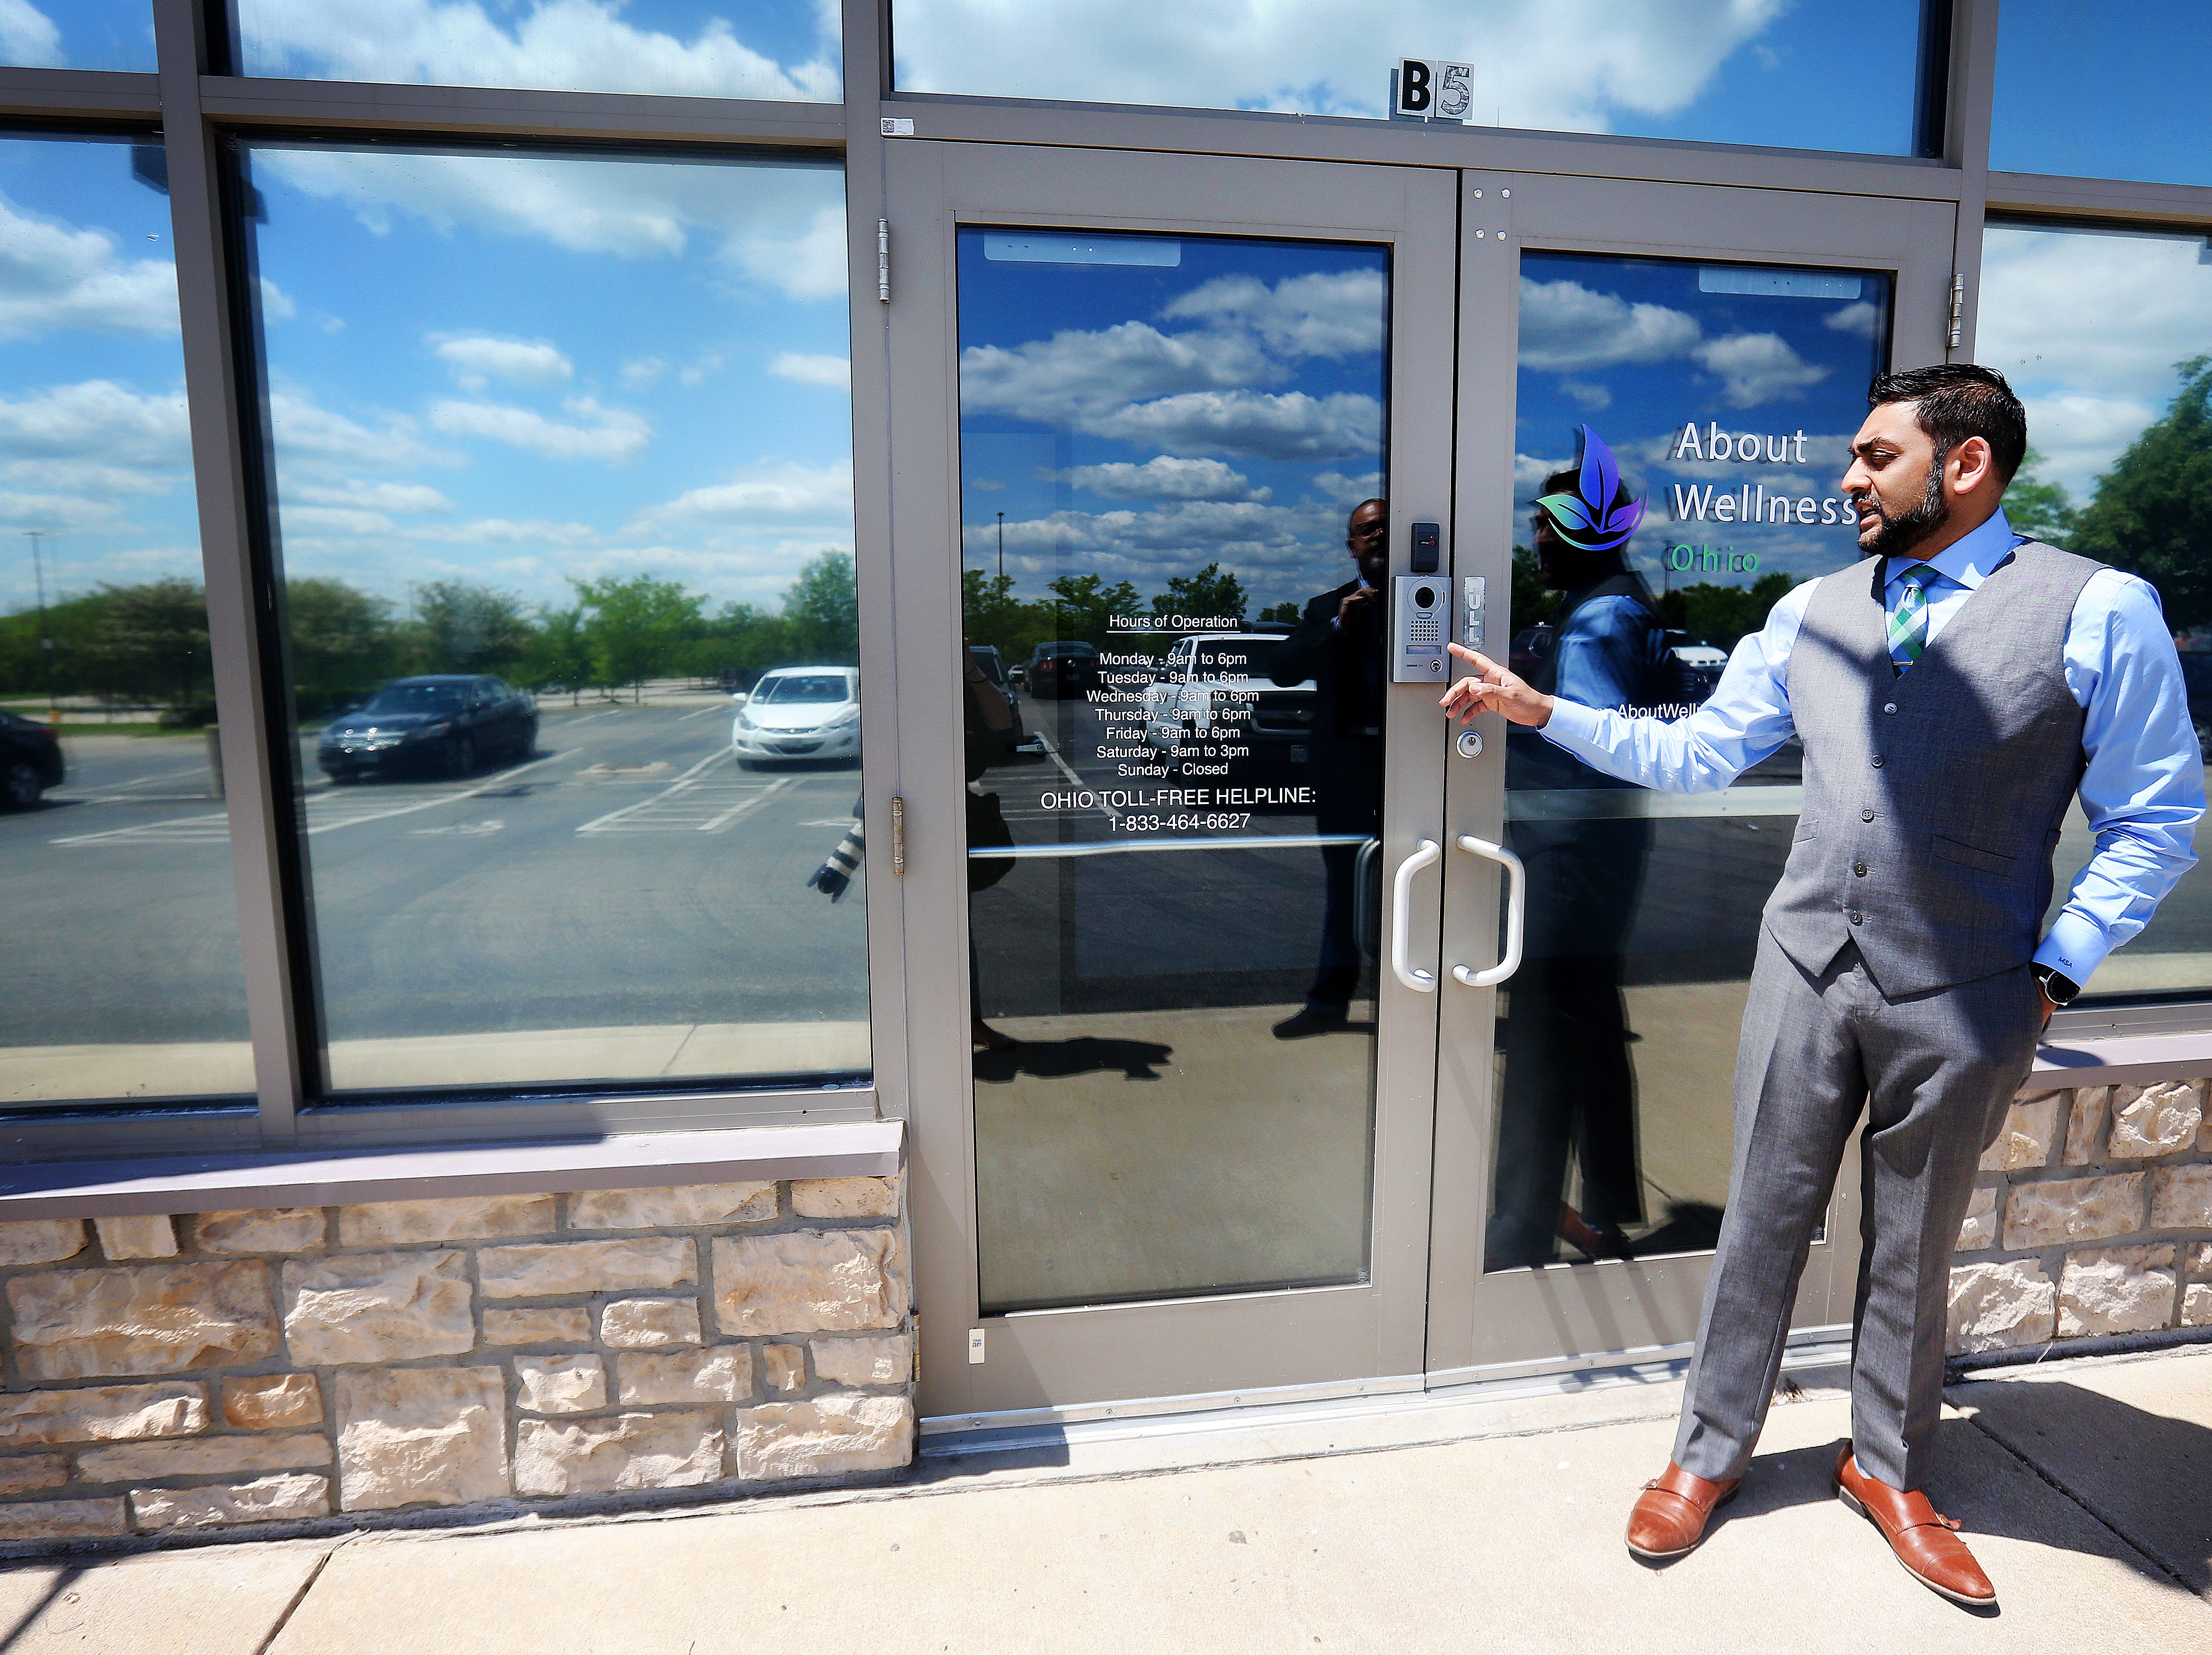 Mac Amin, dispensary manager at About Wellness Ohio, points out the camera on the door of the Lebanon facility. People must identify that they have a registered medical marijuana card before they are allowed to enter inside the building.